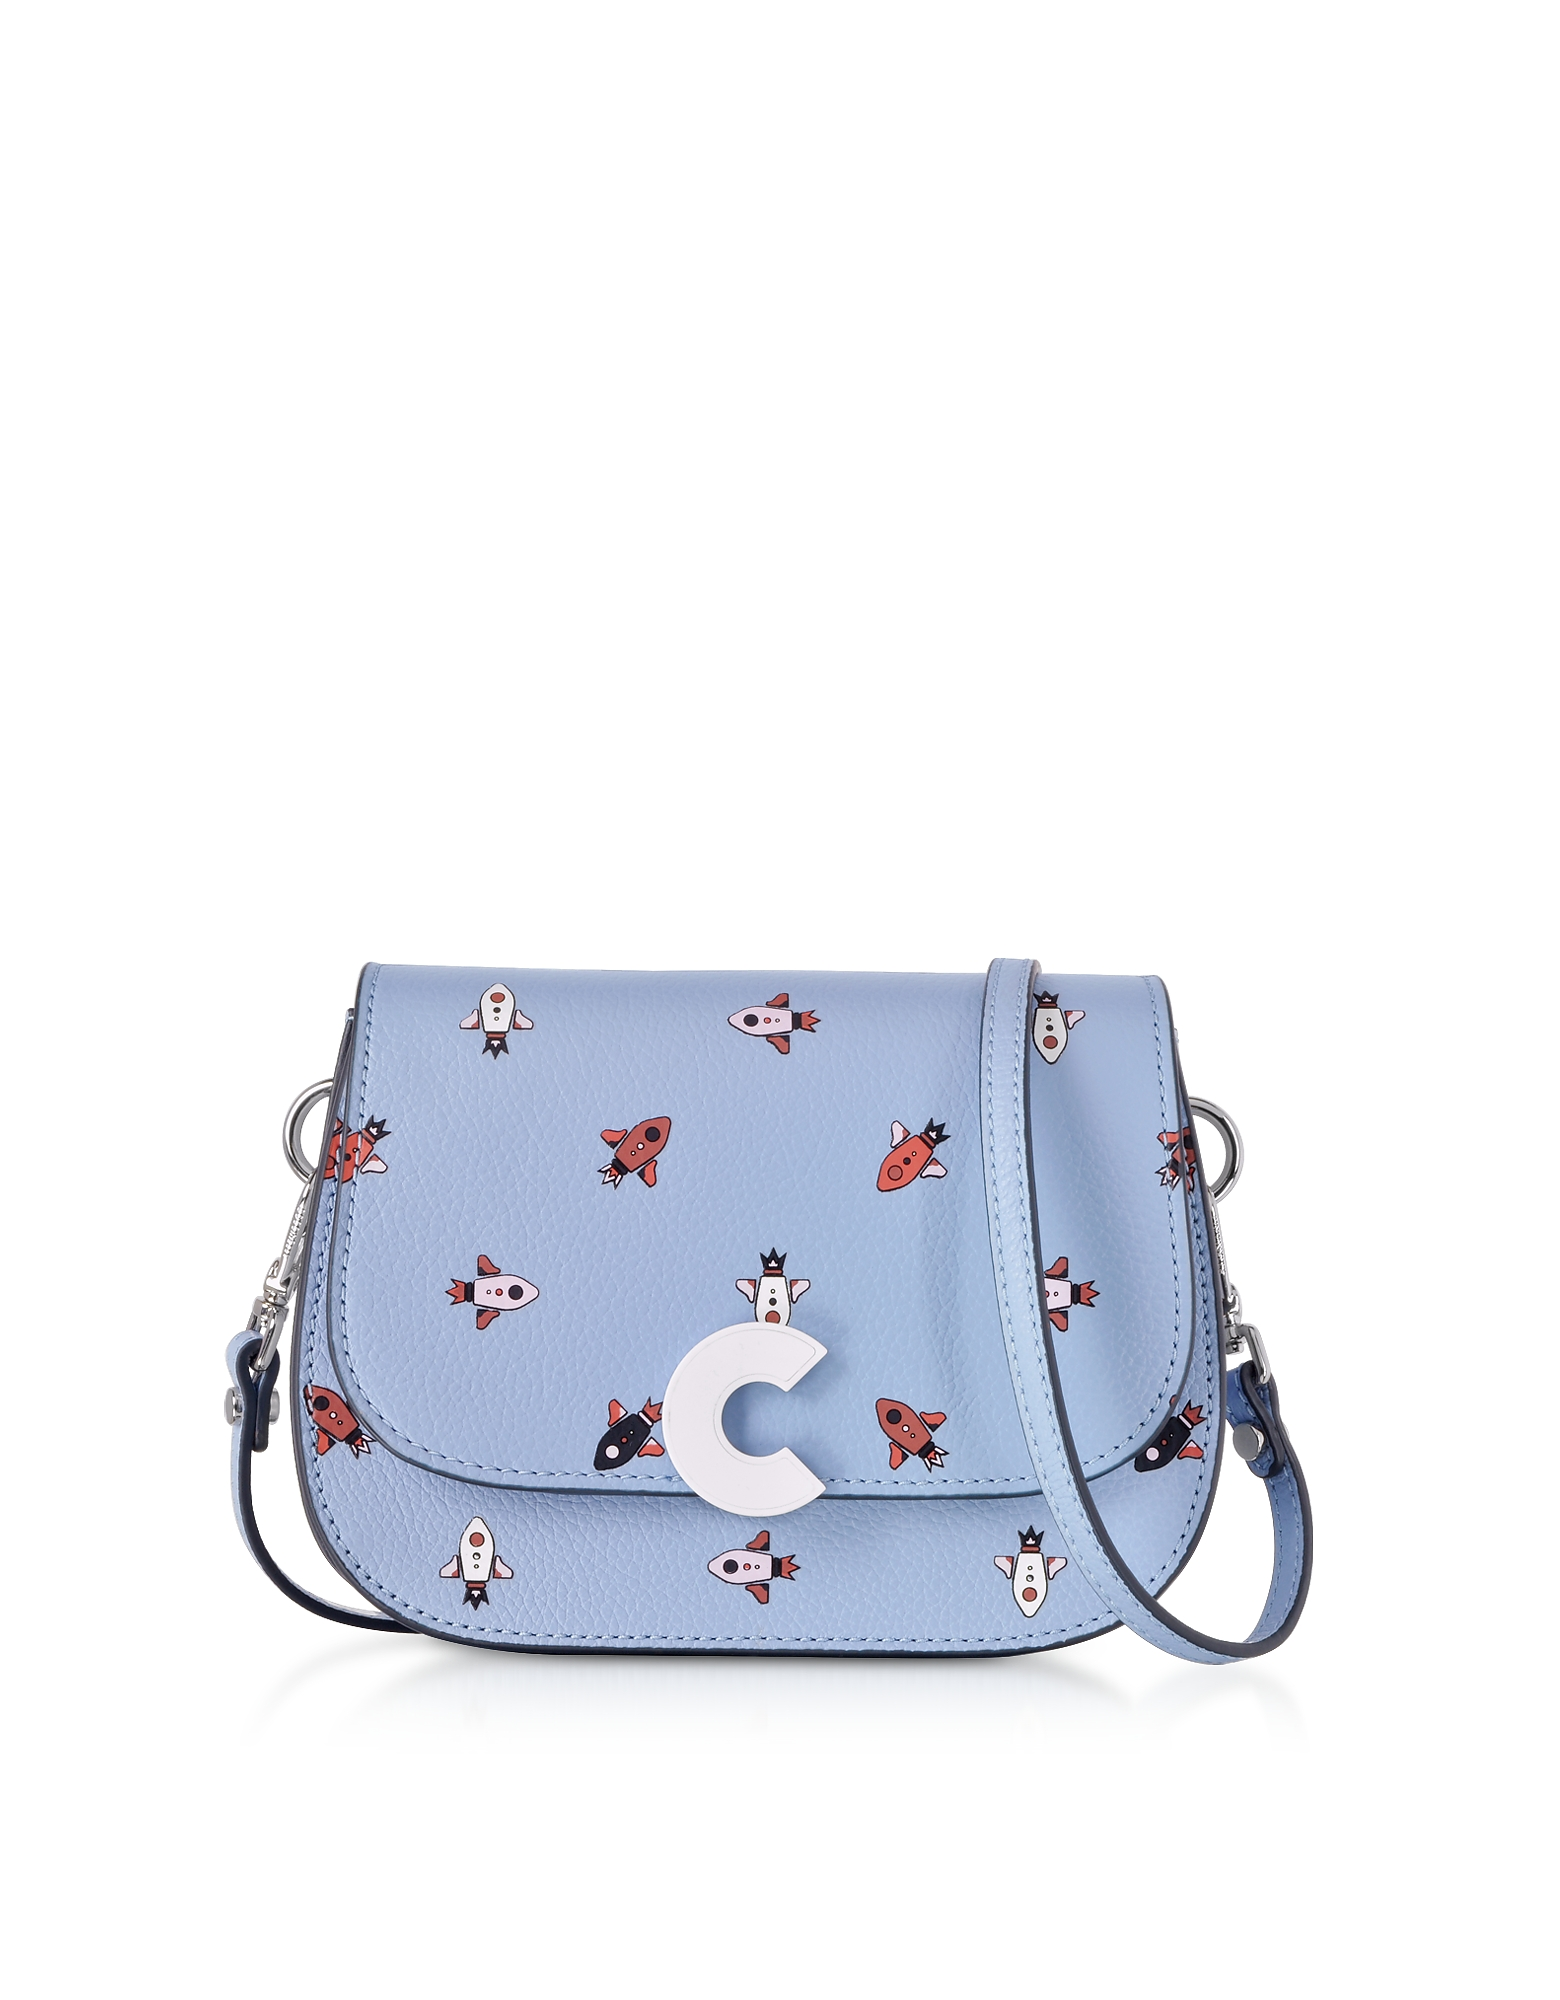 Craquante Razzo Printed Leather Small Shoulder Bag